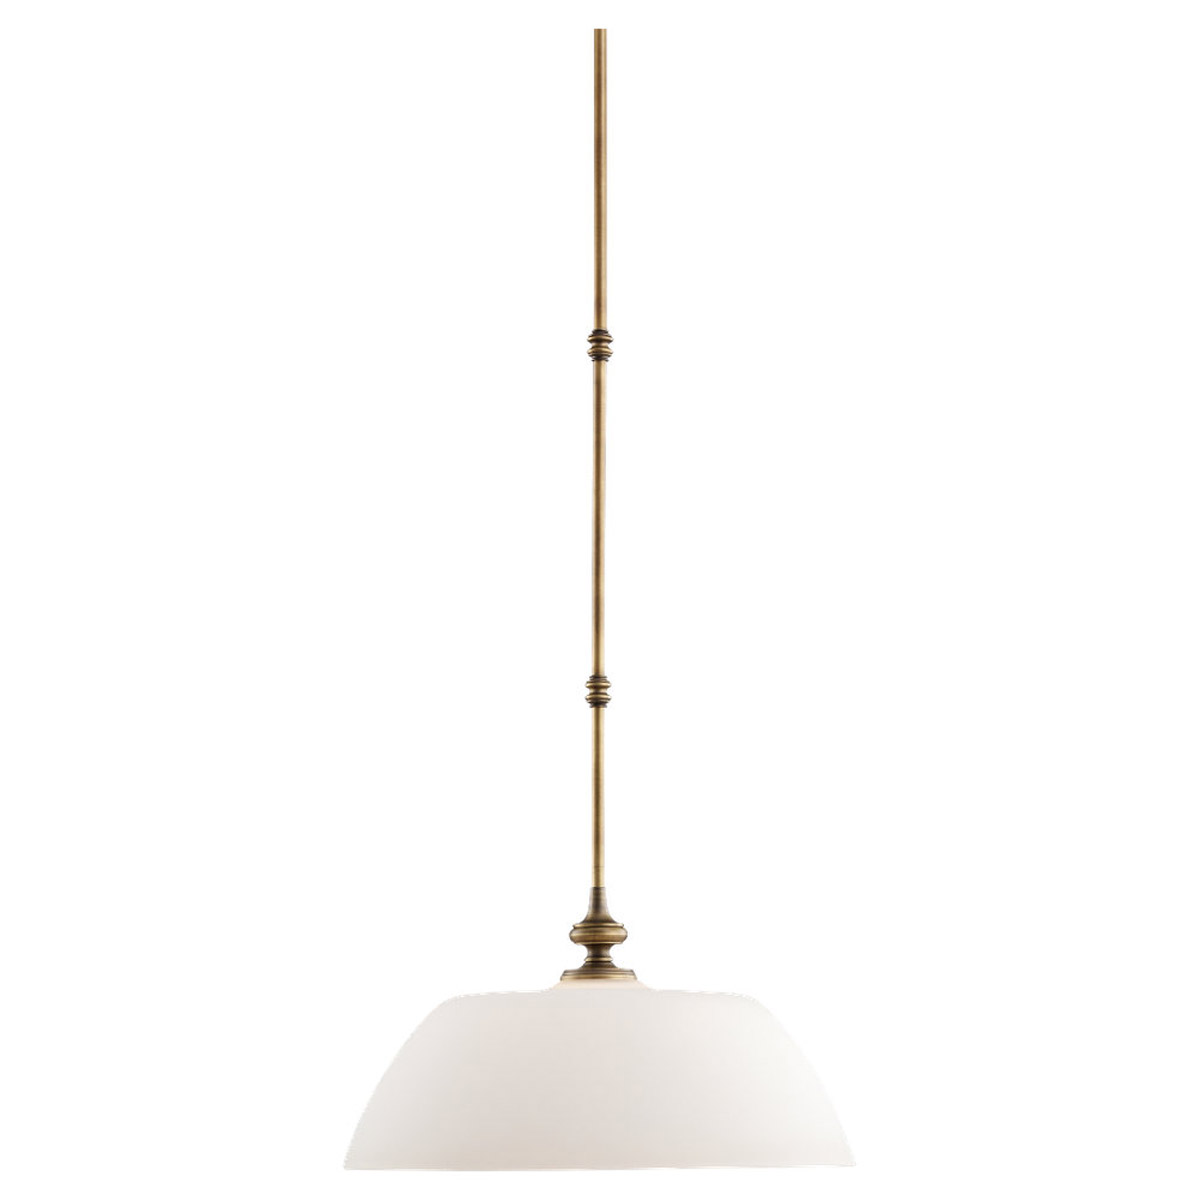 Sea Gull Lighting Montecristo 1 Light Pendant in Aged Bronze 65885-898